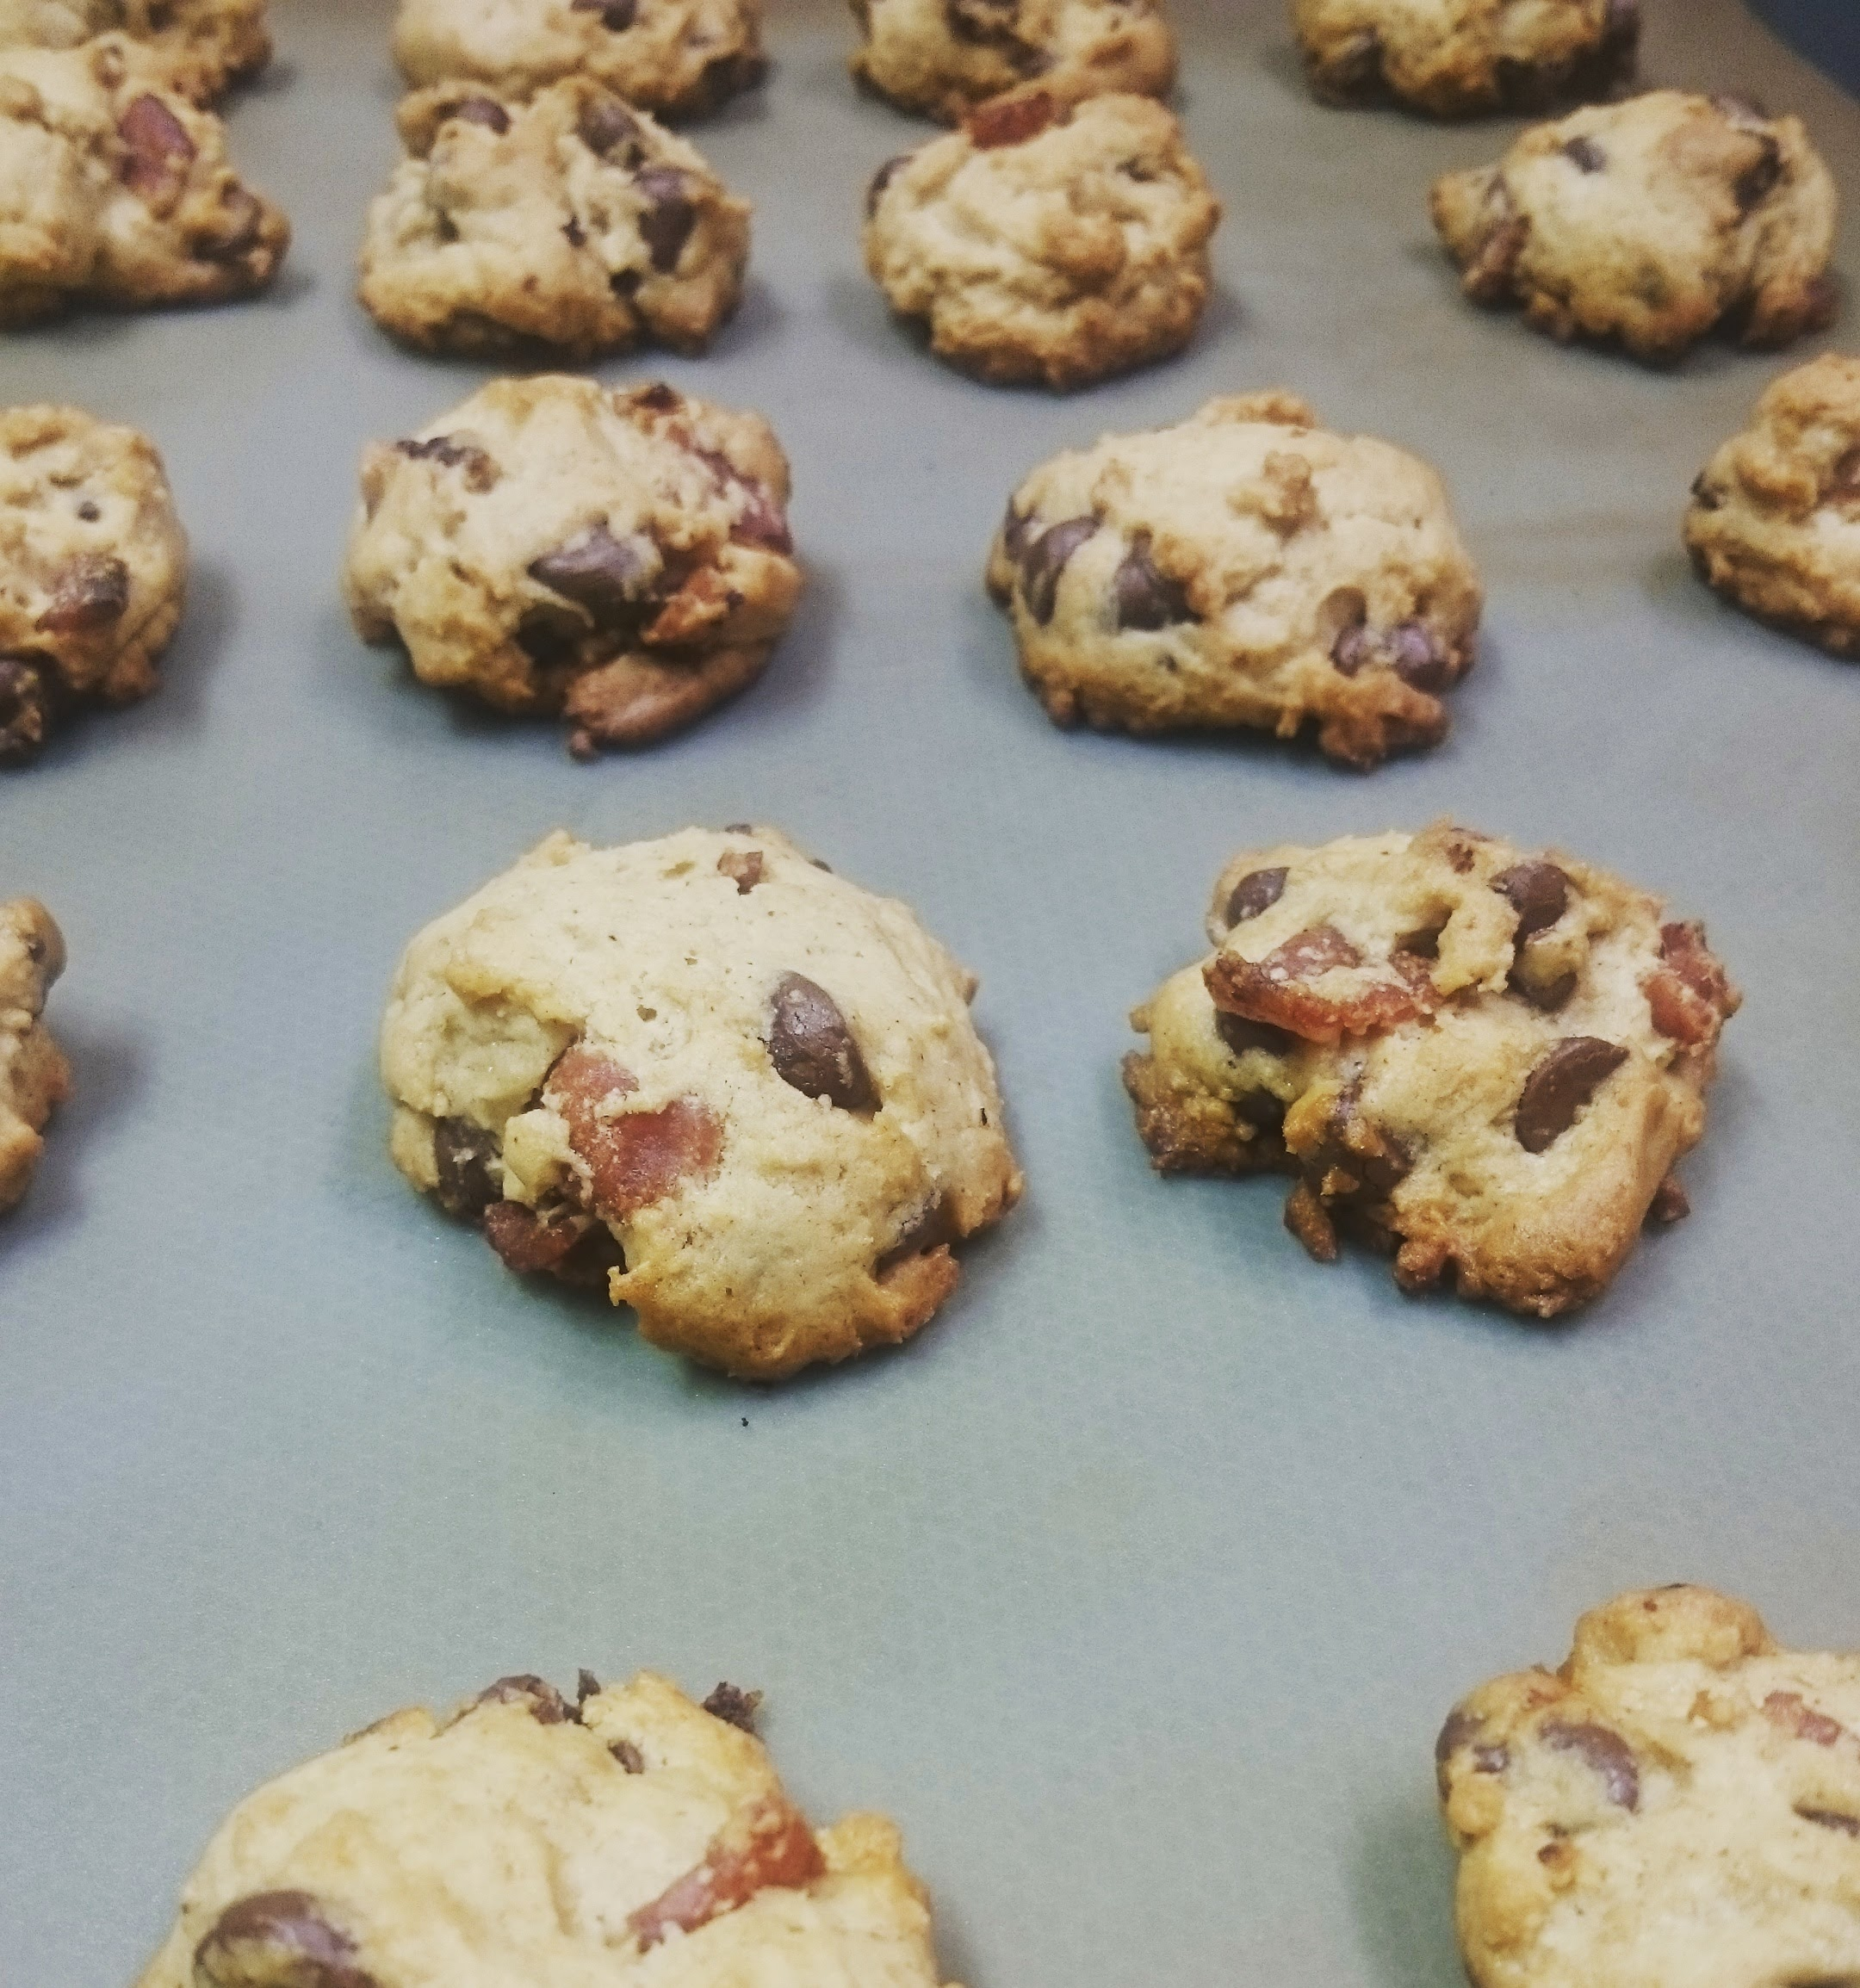 Spiced bacon chocolate chip cookies, fresh from the oven!